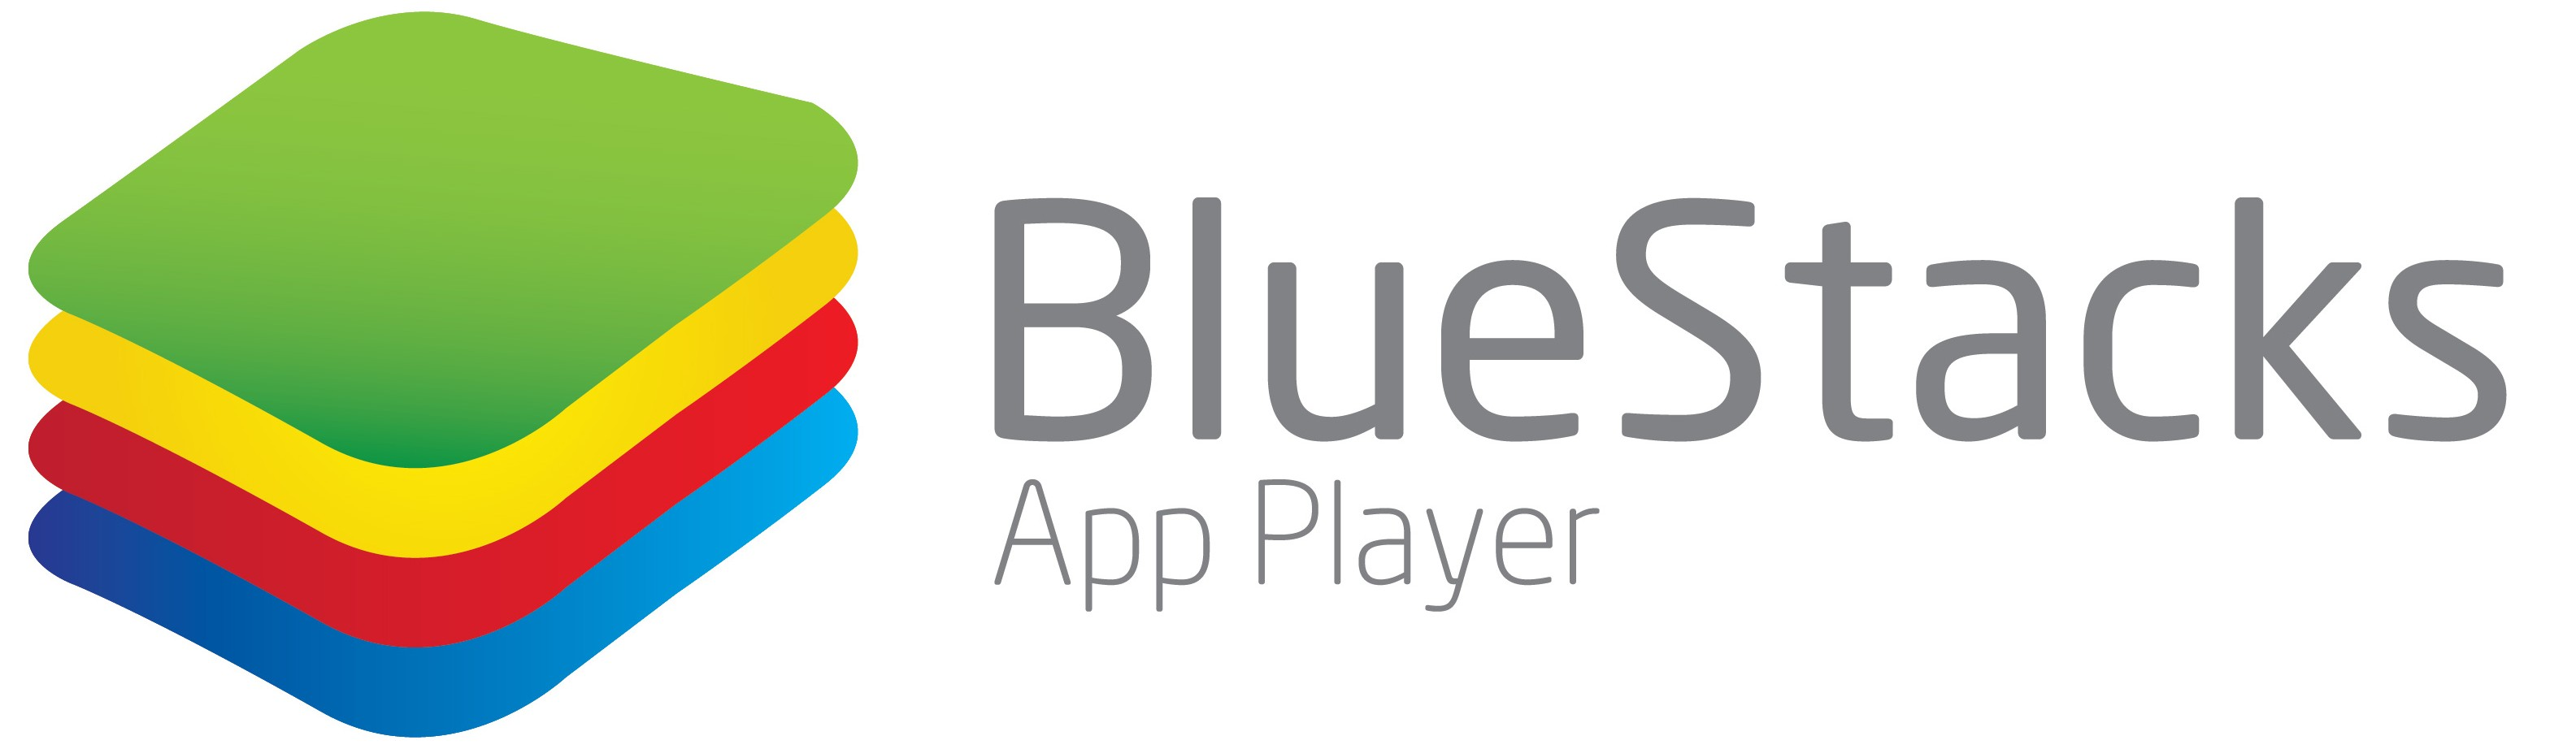 play-Android-games-on-Windows-PC-Best-Way-blustacks image